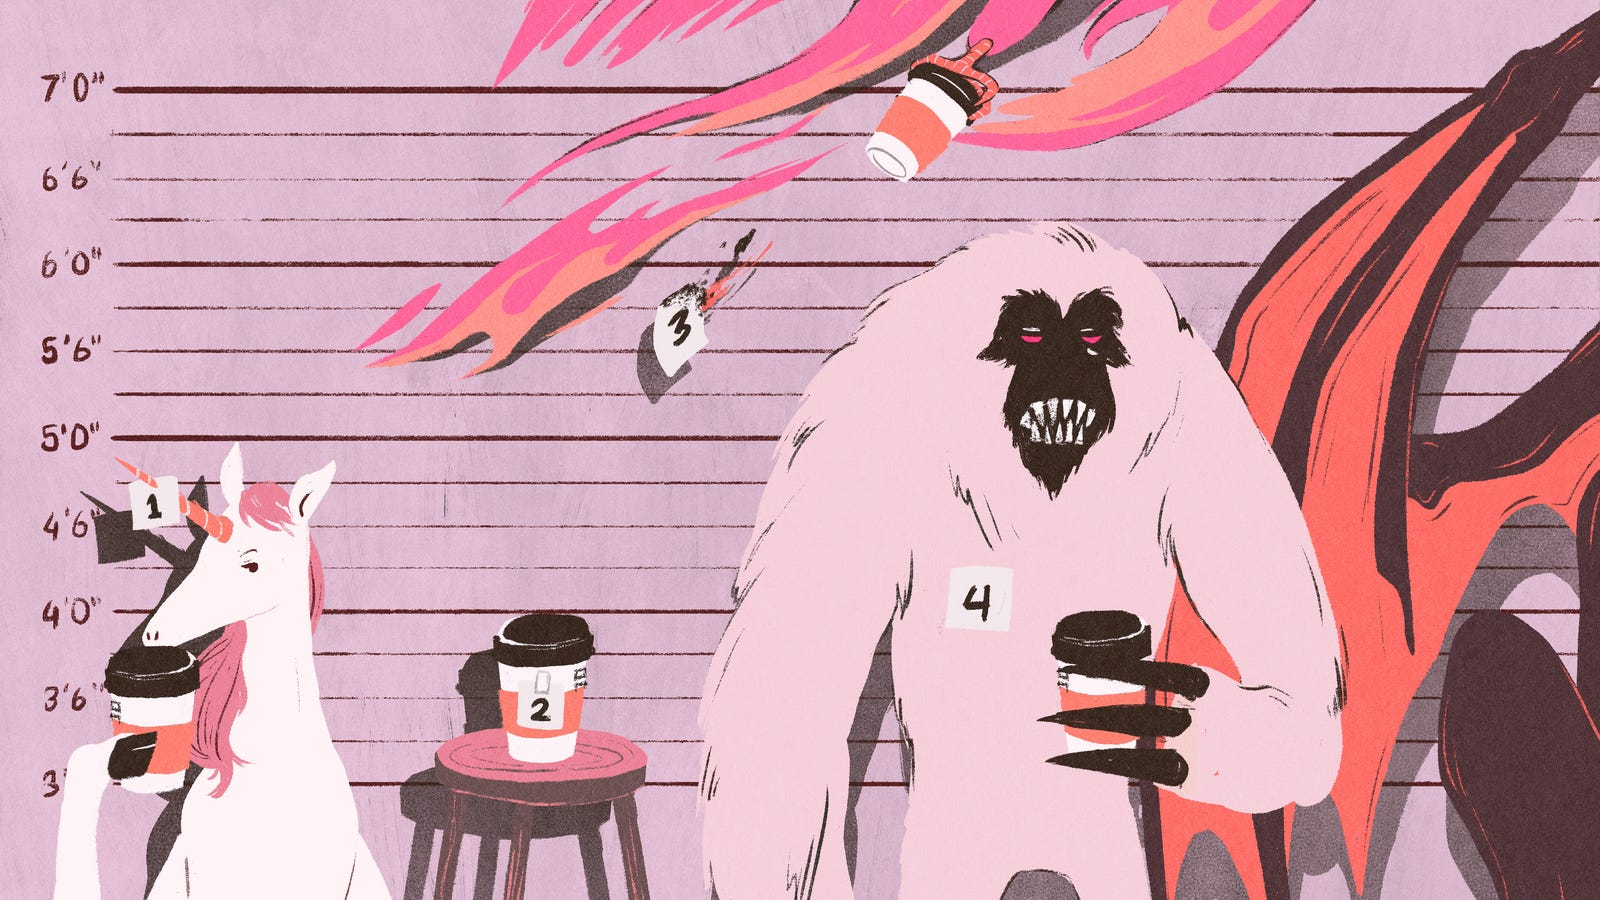 Four popular coffee myths debunked by science - Myths and truths about coffee ...